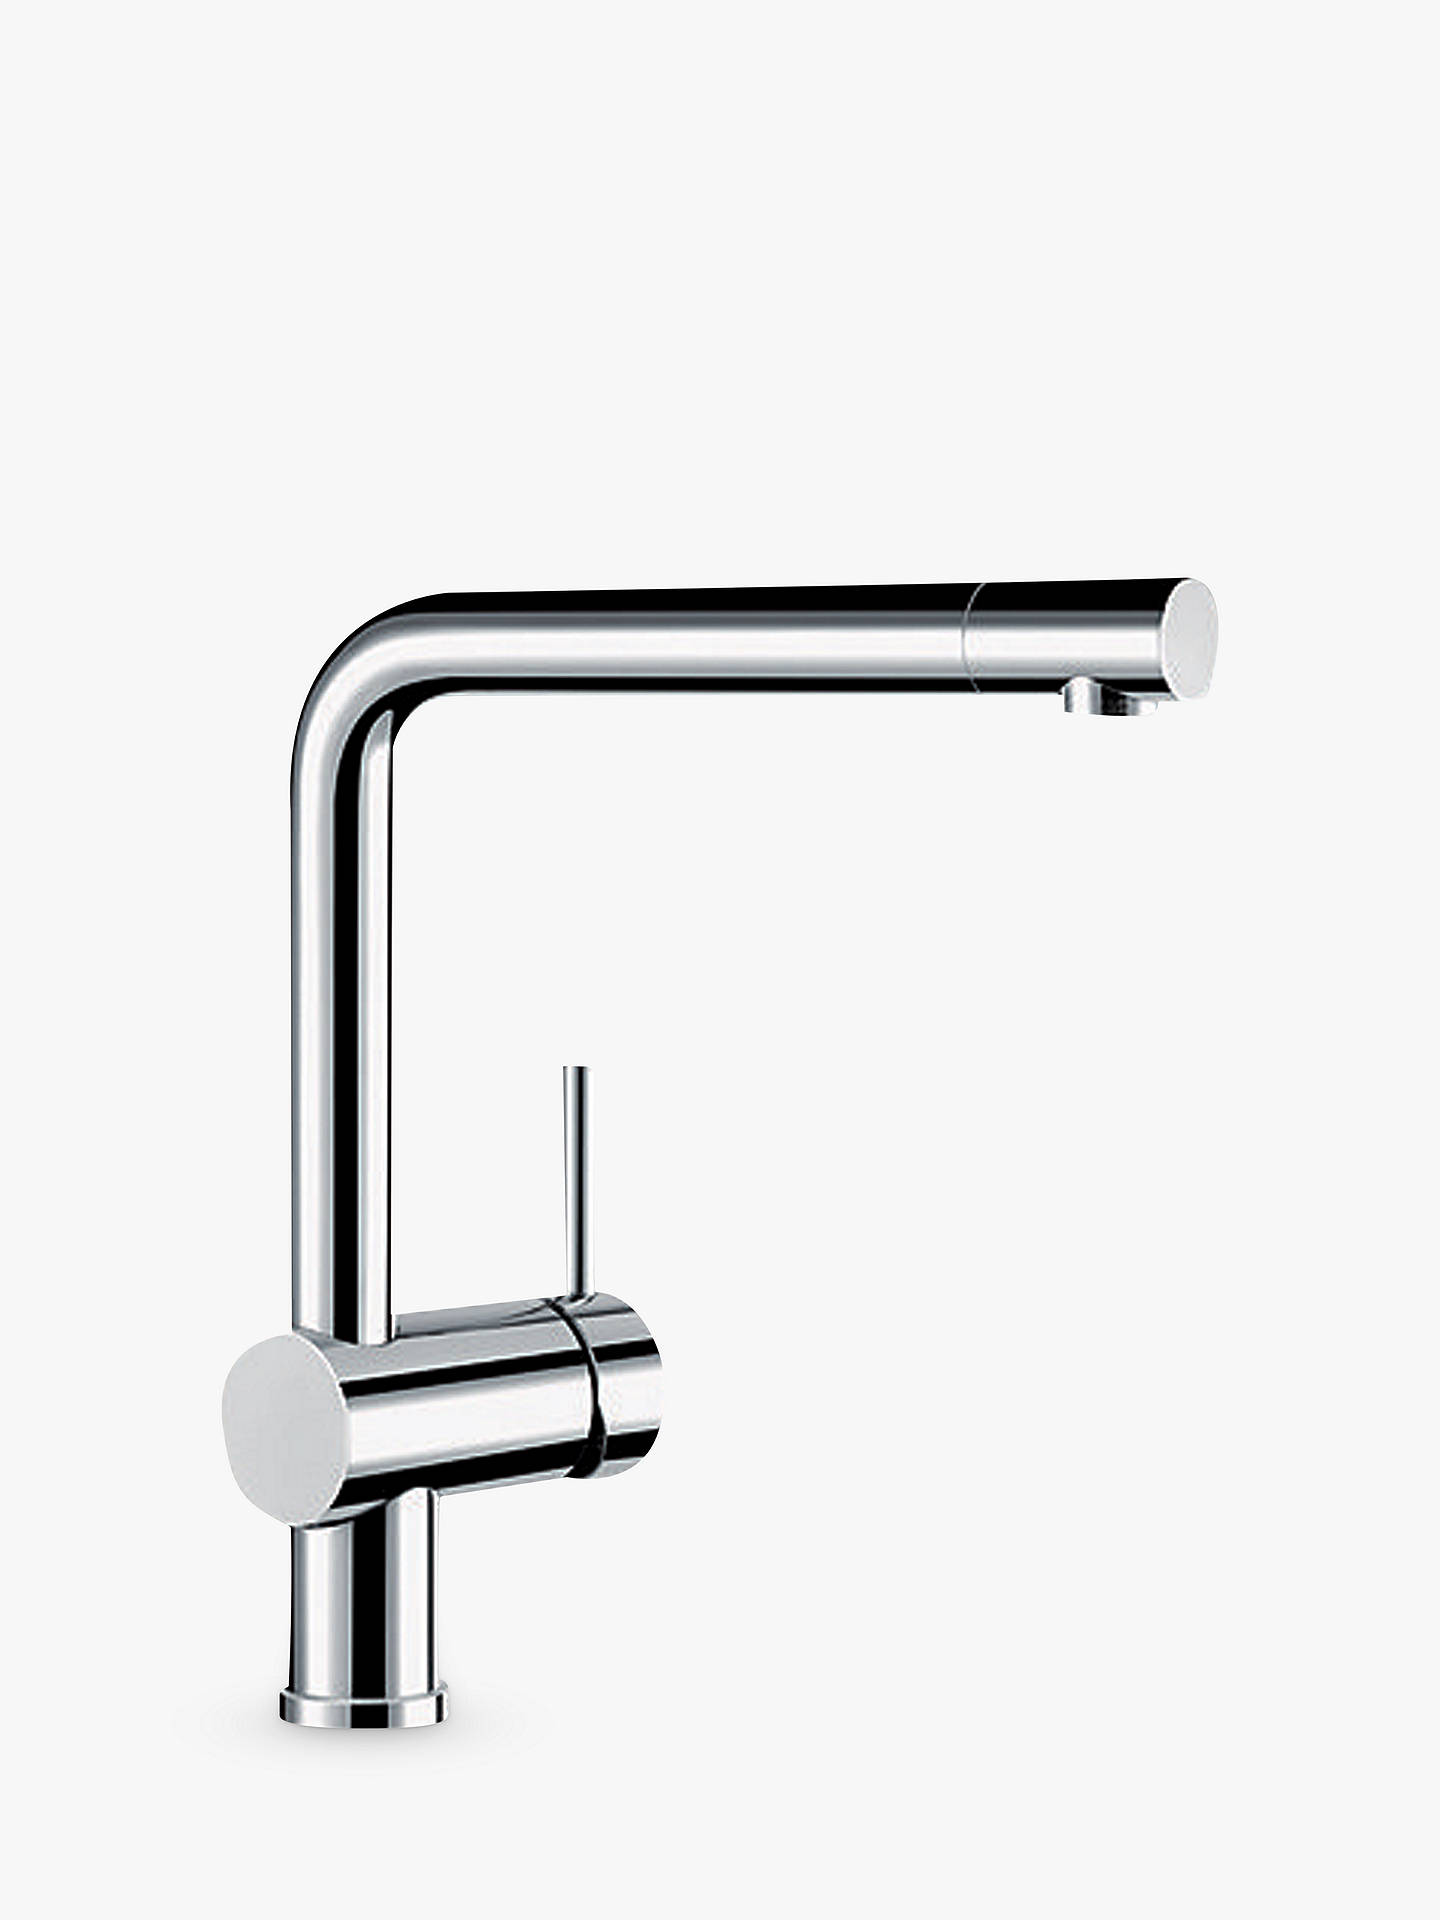 Blanco Linus Bm2150 Single Lever Mixer Kitchen Tap Chrome At John